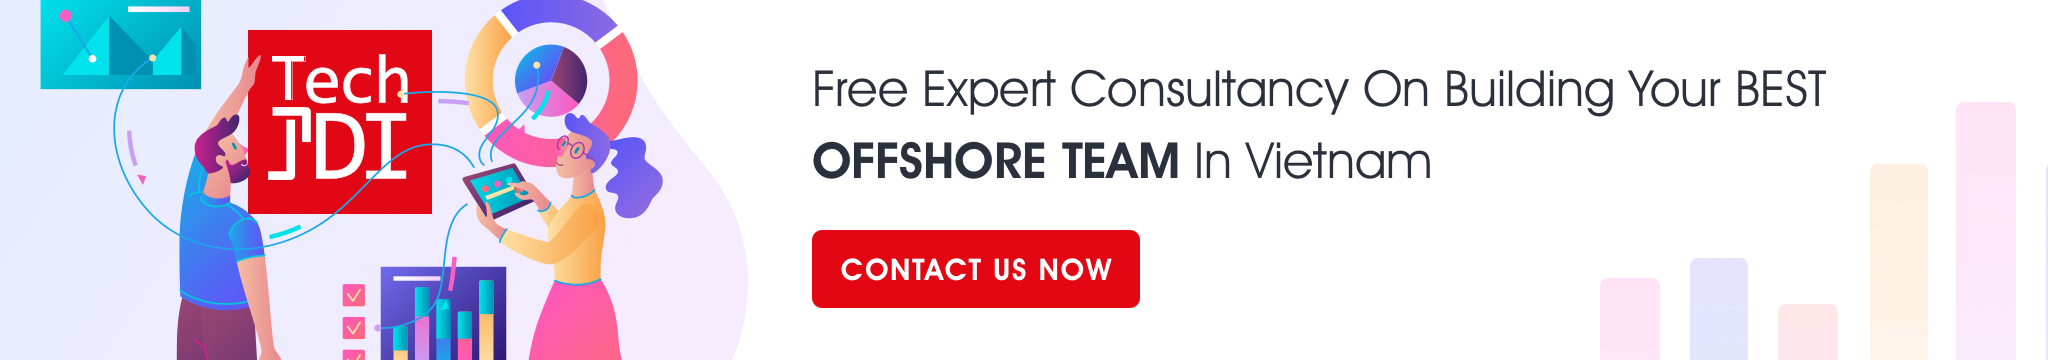 Contact Tech JDI for Offshoring Consultancy